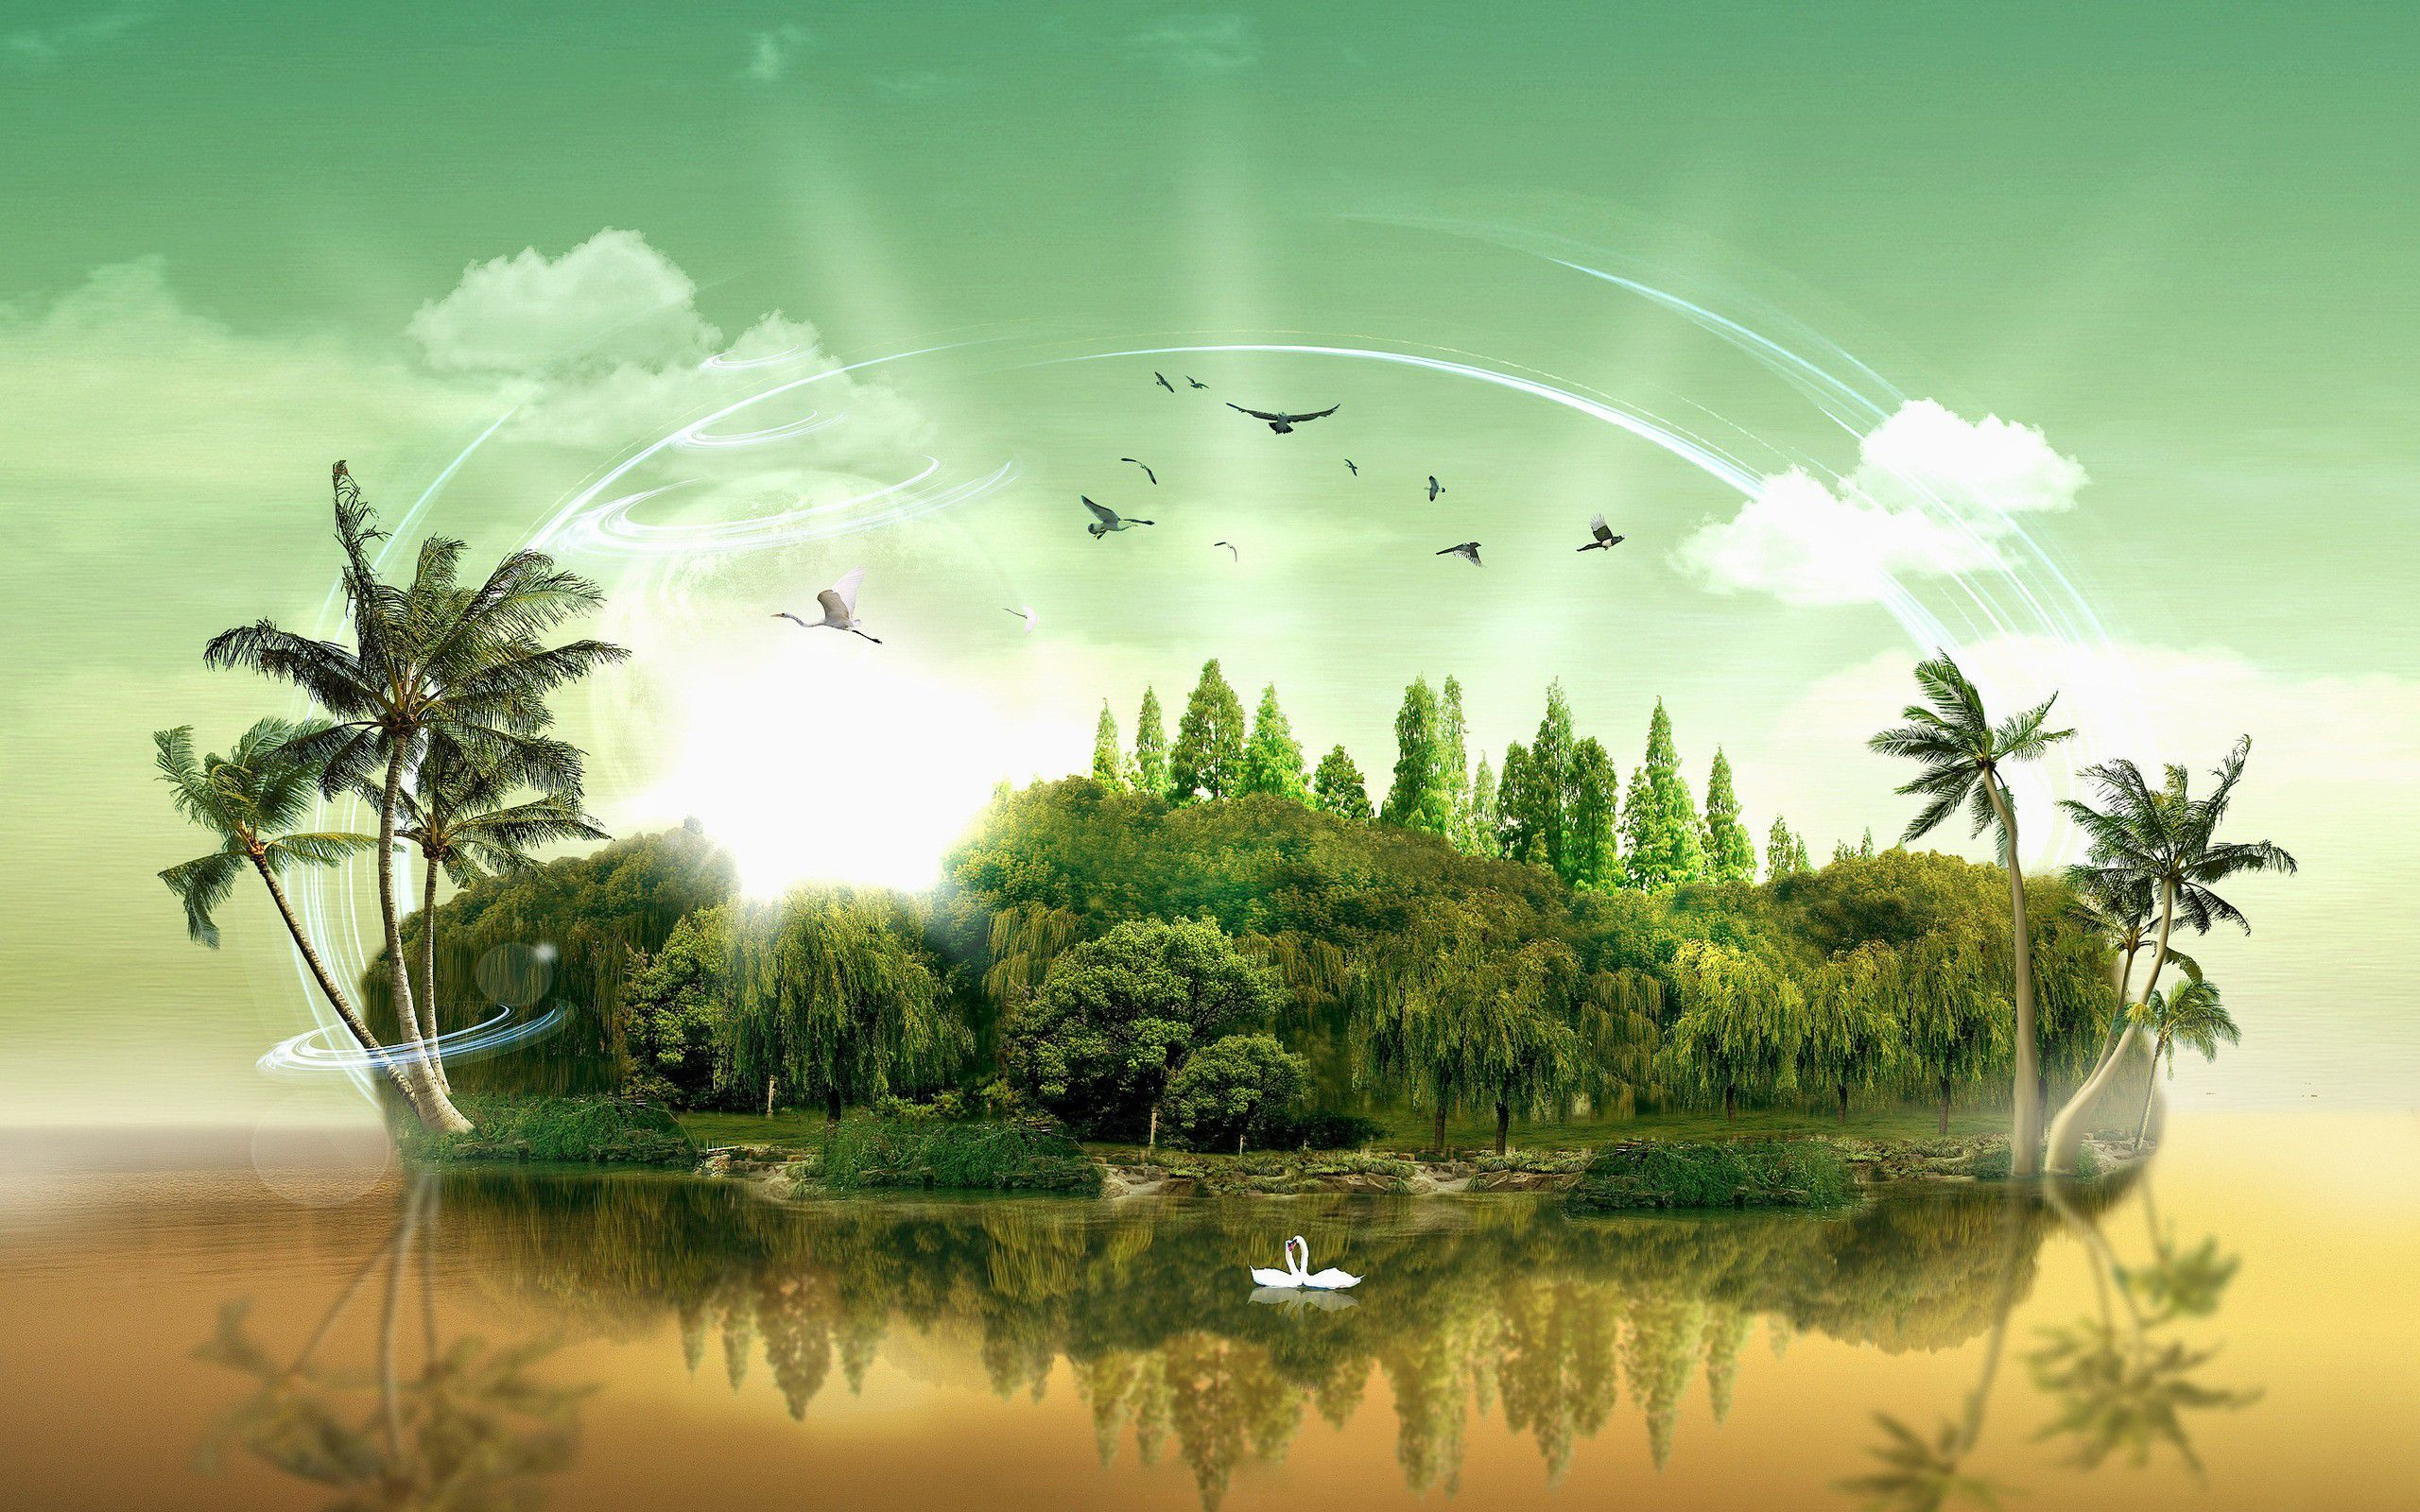 Green Abstract Nature Backgrounds Google Search Nature Images Beautiful Nature Island Wallpaper